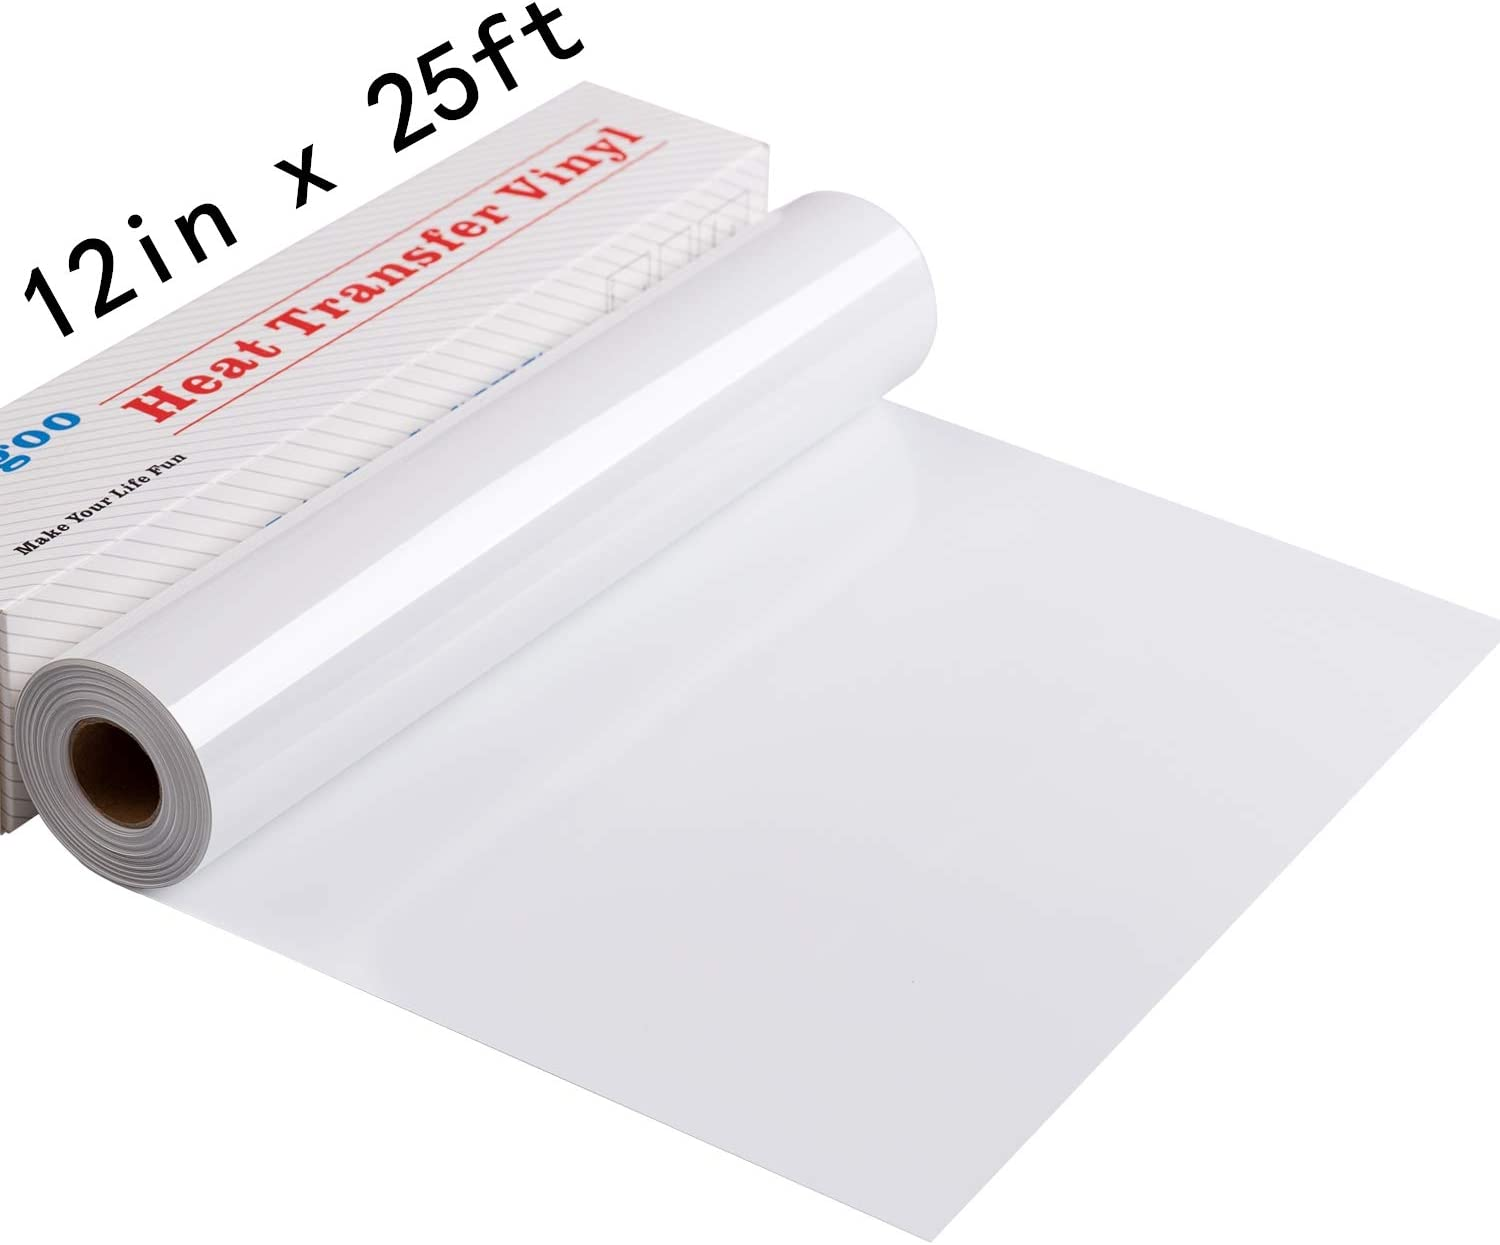 25Feet Iron On Vinyl Rolls,Heat Transfer Vinyl for Cricut and Silhouette Cameo,Easy to Cut /& Weed HTV Vinyl Roll Black Vinyl Heat Transfer for T-Shirts